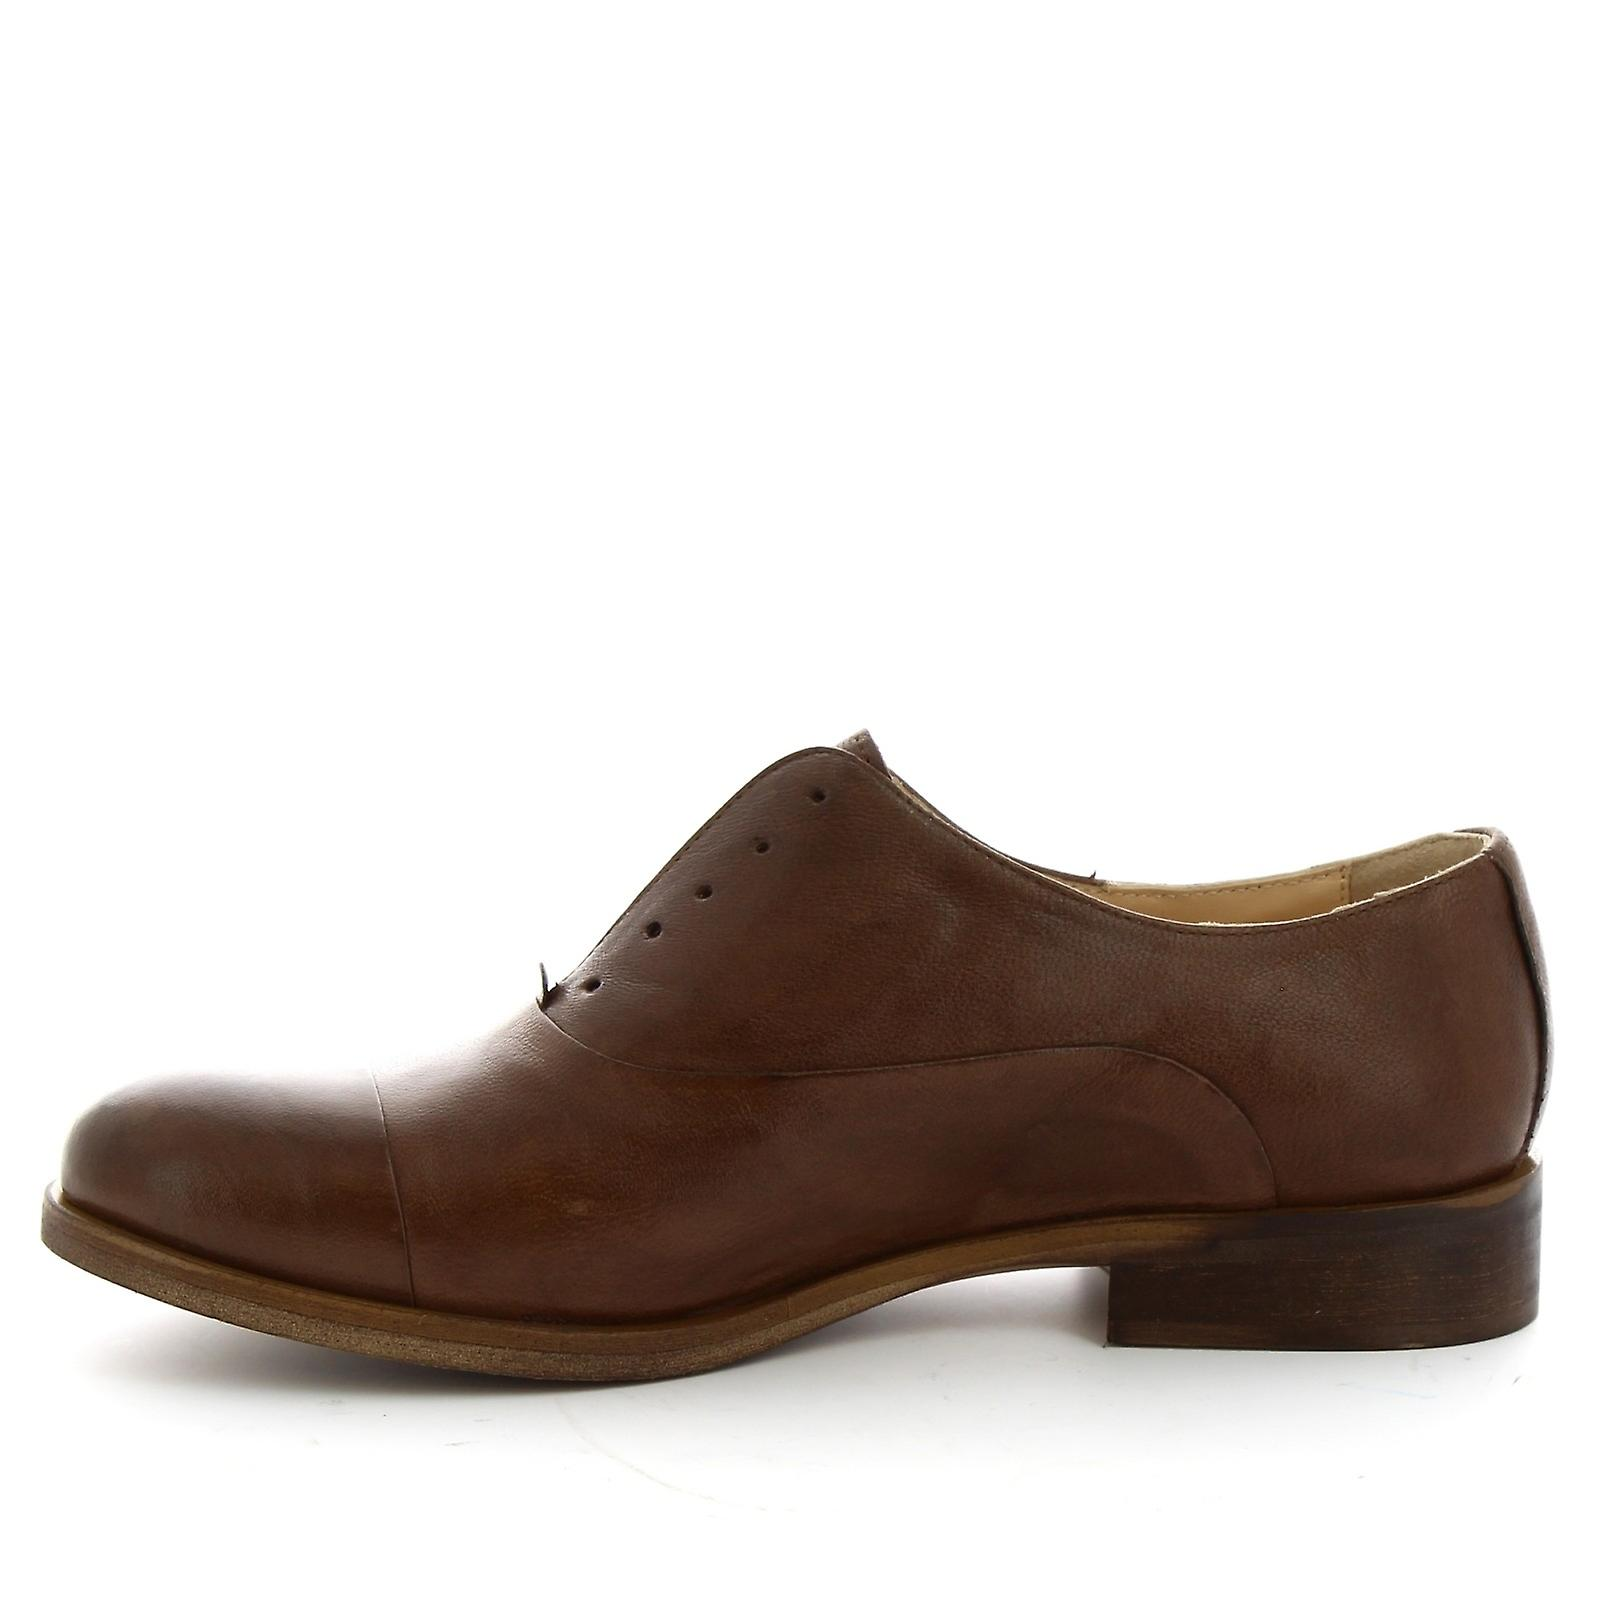 Leonardo Shoes Women's handmade oxford laceless shoes in dark brown leather